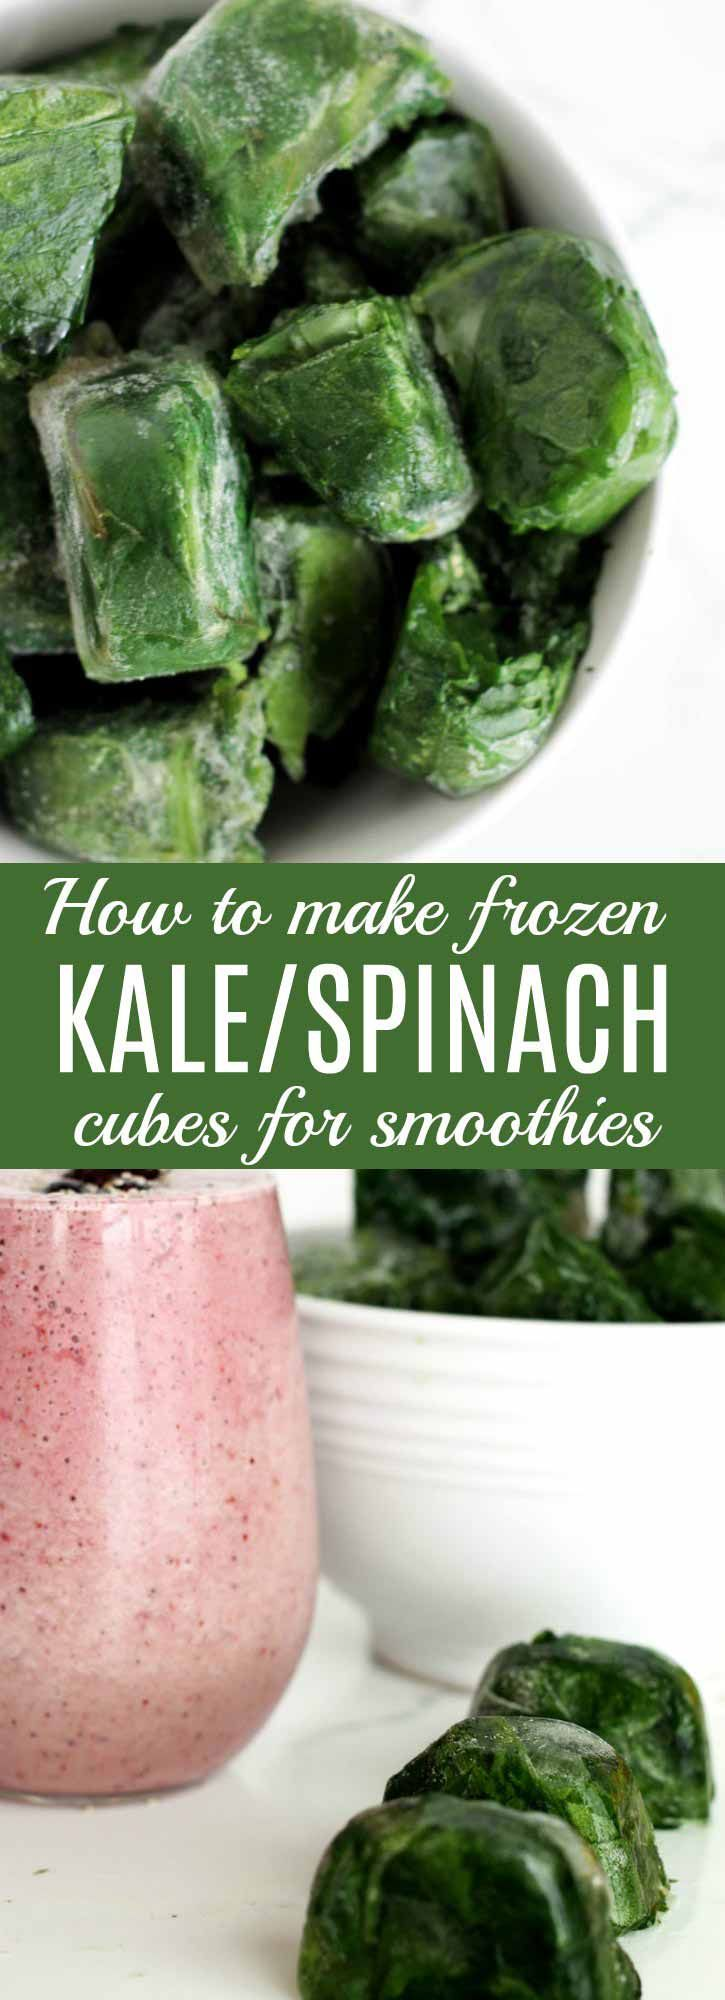 How to Make Frozen Kale & Spinach Cubes: These kale & spinach cubes are easy to make & easy on the budget. A great way to always have healthy smoothie ingredients on hand.   thenourishedfamily.com